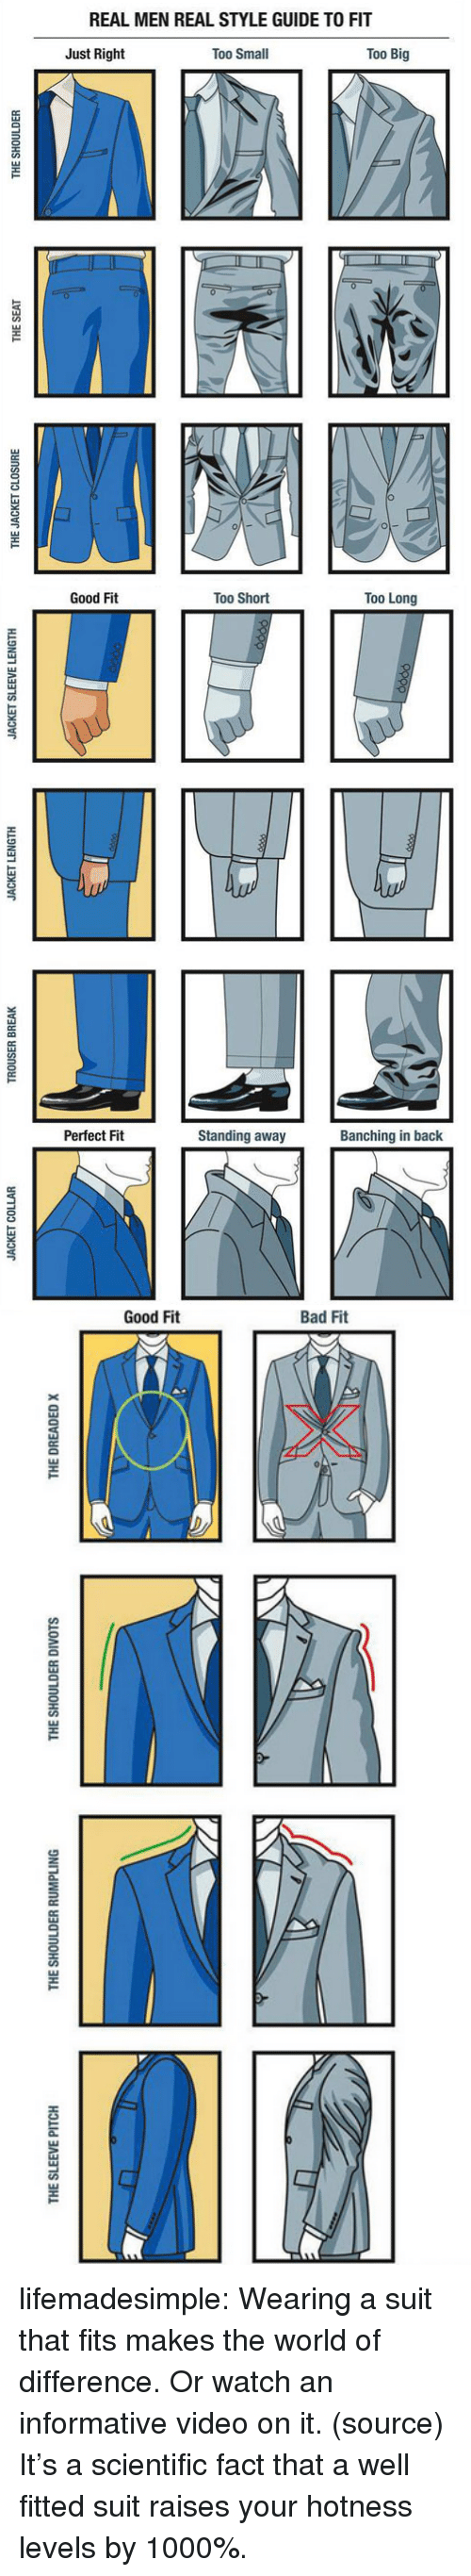 The Dreaded: REAL MEN REAL STYLE GUIDE TO FIT  Just Right  Too Small  Too Big  0  1   Good Fit  Too Short  Too Long  Perfect Fit  Standing away  Banching in back   THE SLEEVE PITCH  THE SHOULDER RUMPLING  THE SHOULDER DIVOTS  THE DREADED x lifemadesimple:  Wearing a suit that fits makes the world of difference. Or watch an informative video on it. (source)  It's a scientific fact that a well fitted suit raises your hotness levels by 1000%.